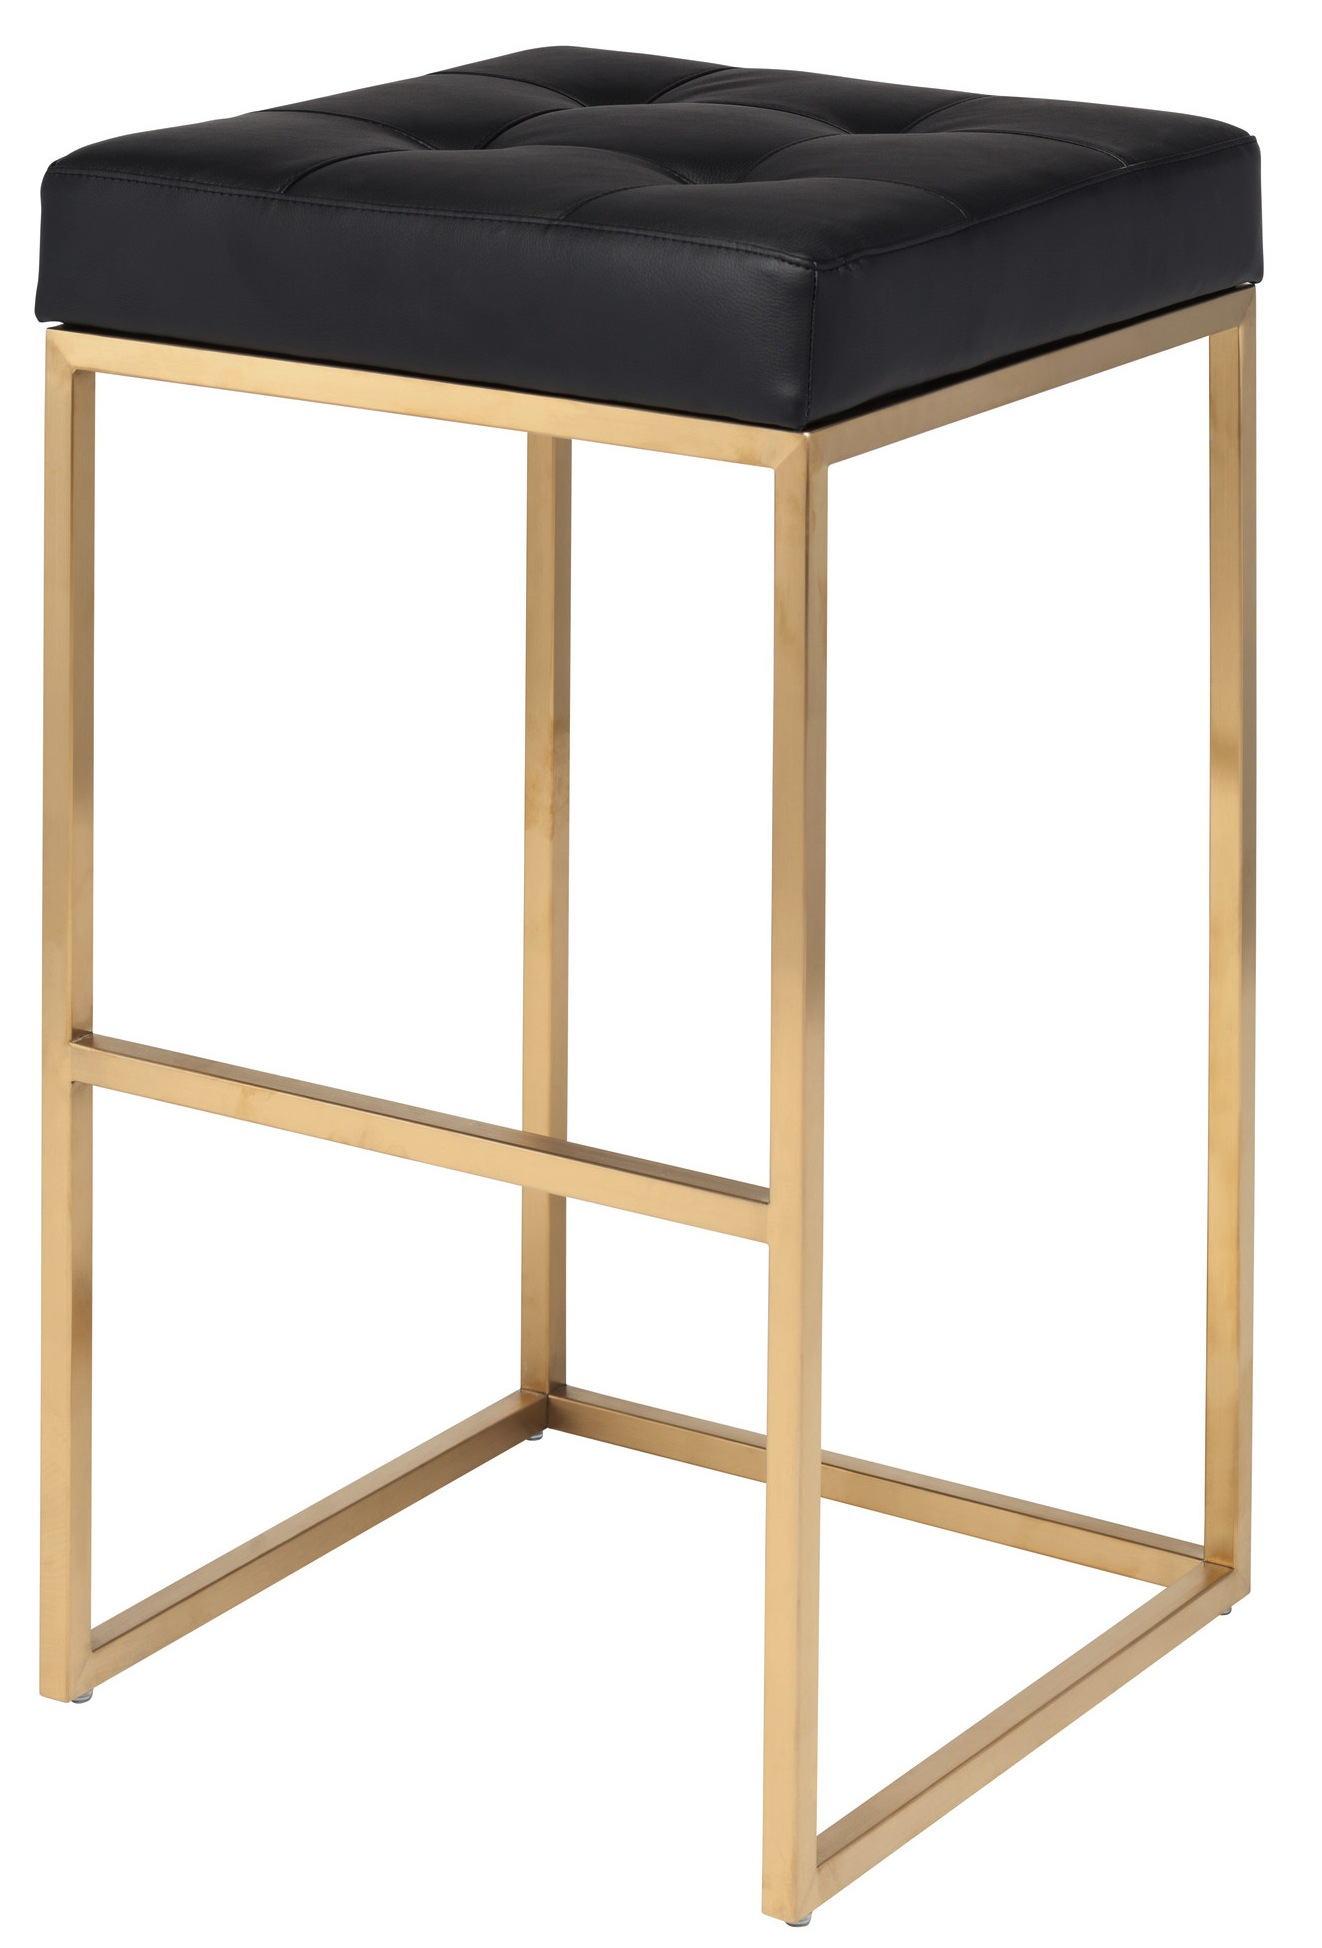 chibarstoolblackwithgoldfinish . nuevo gold chi bar stool  advancedinteriordesignscom